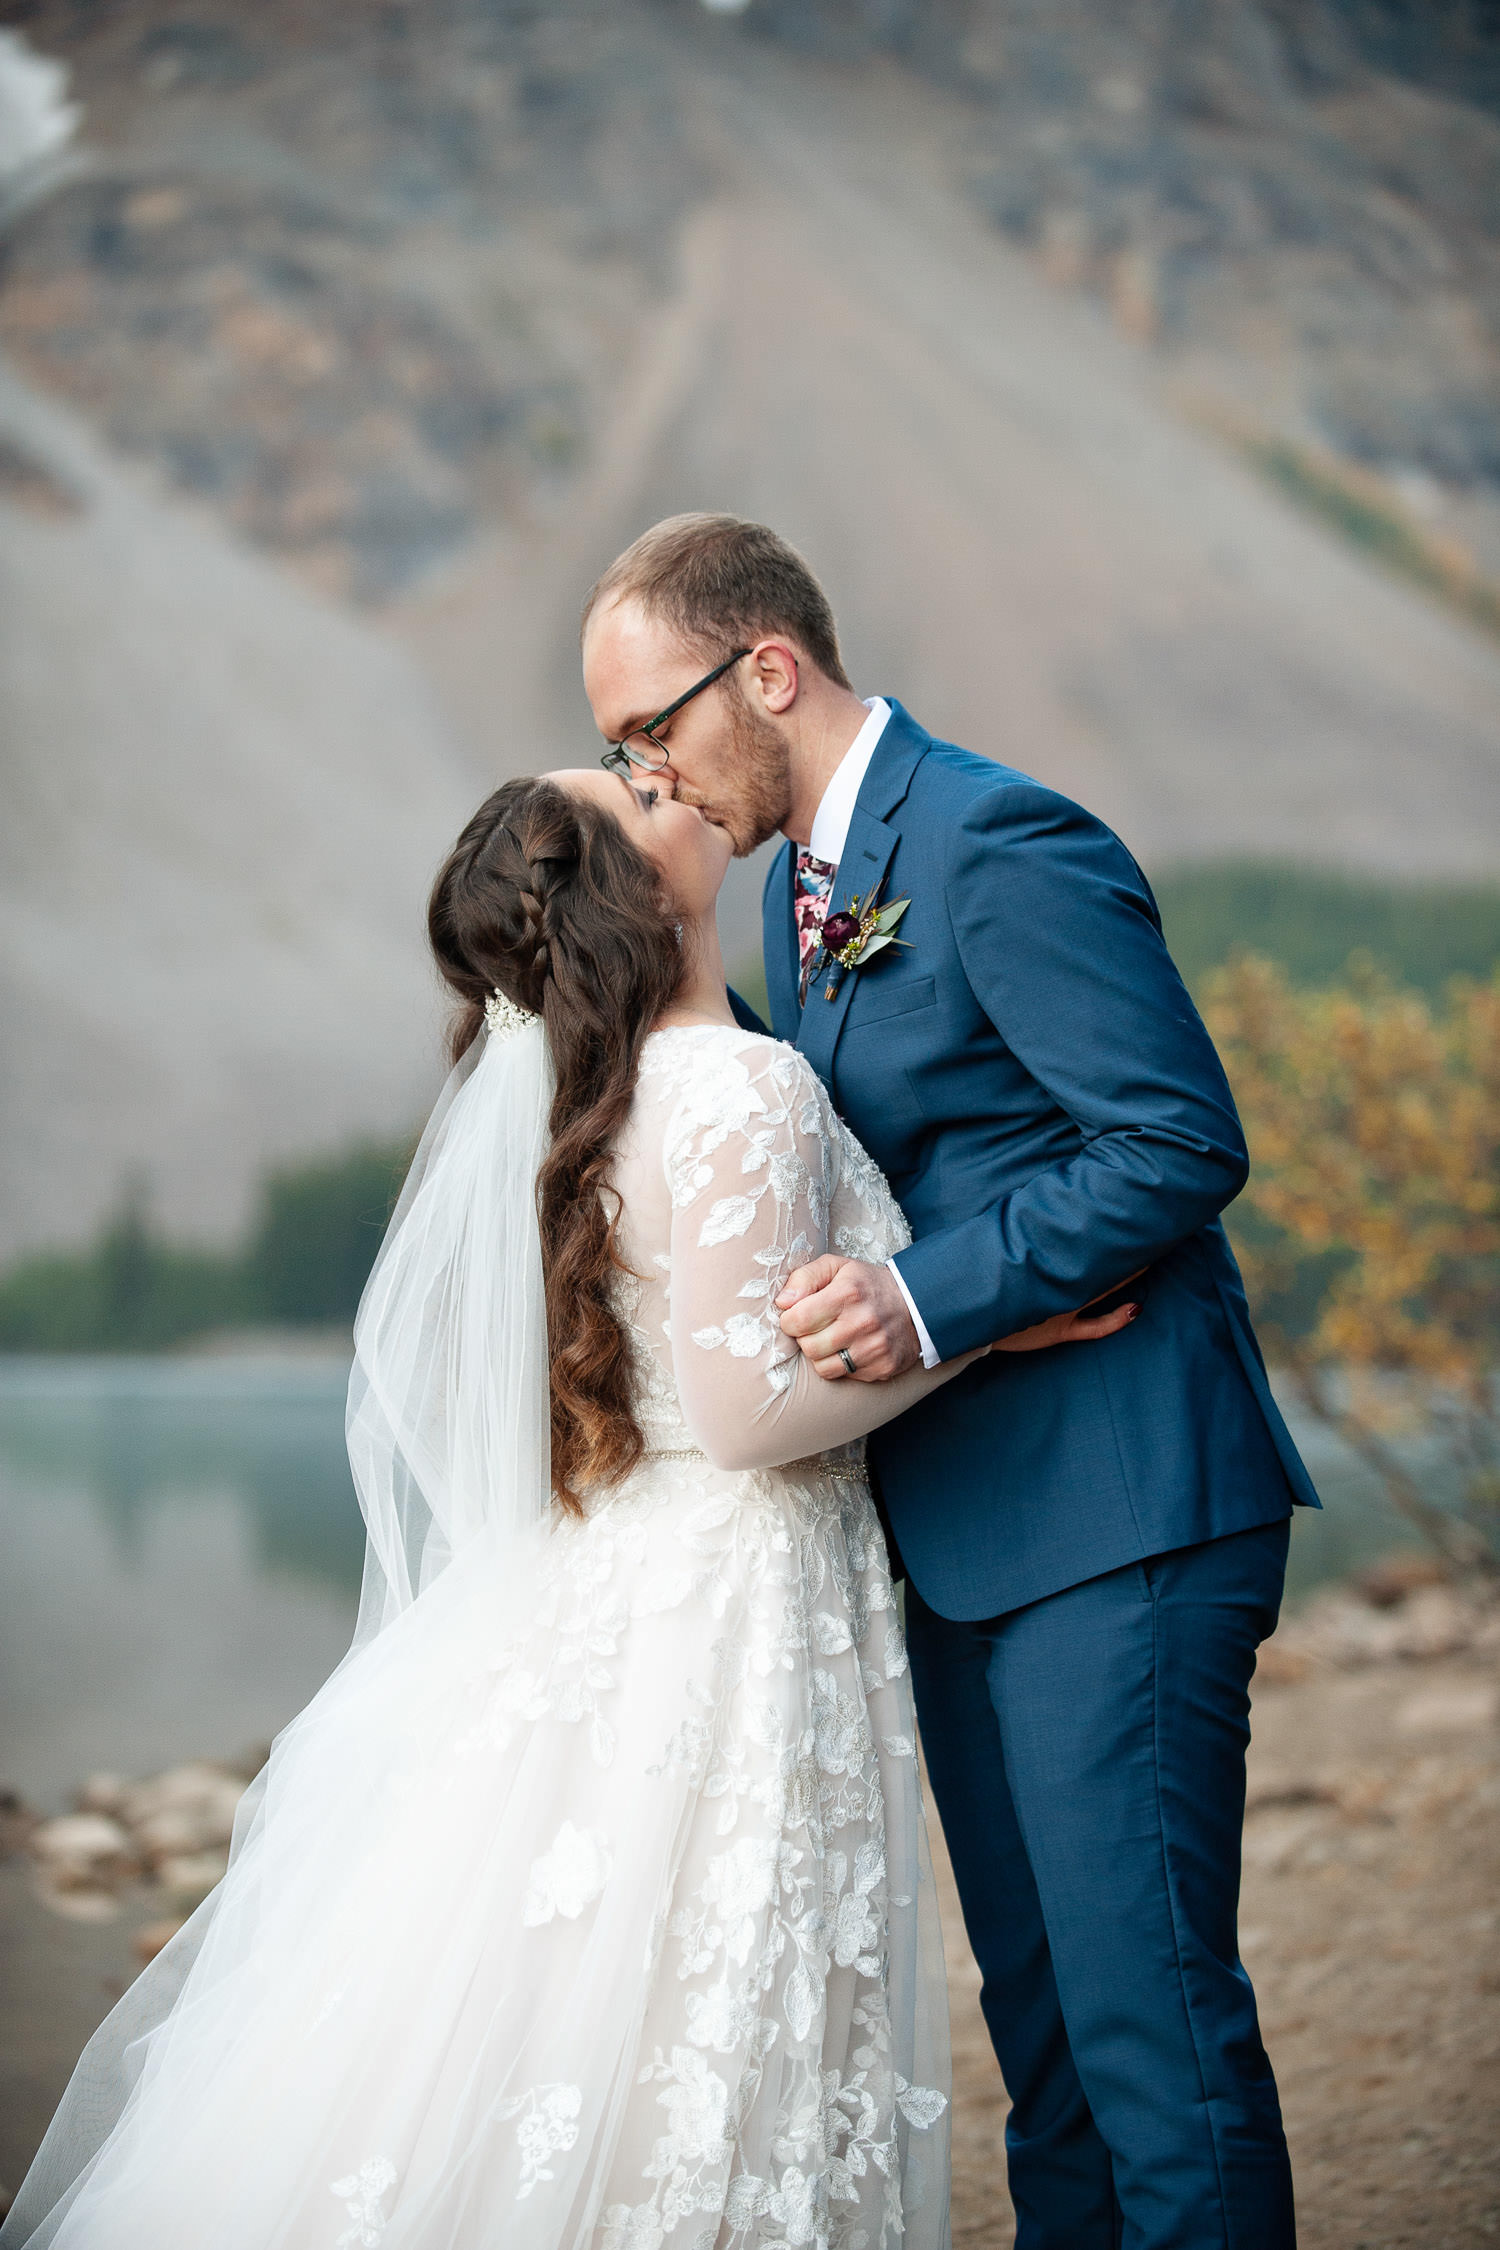 First kiss at Moraine Lake elopement captured by Tara Whittaker Photography